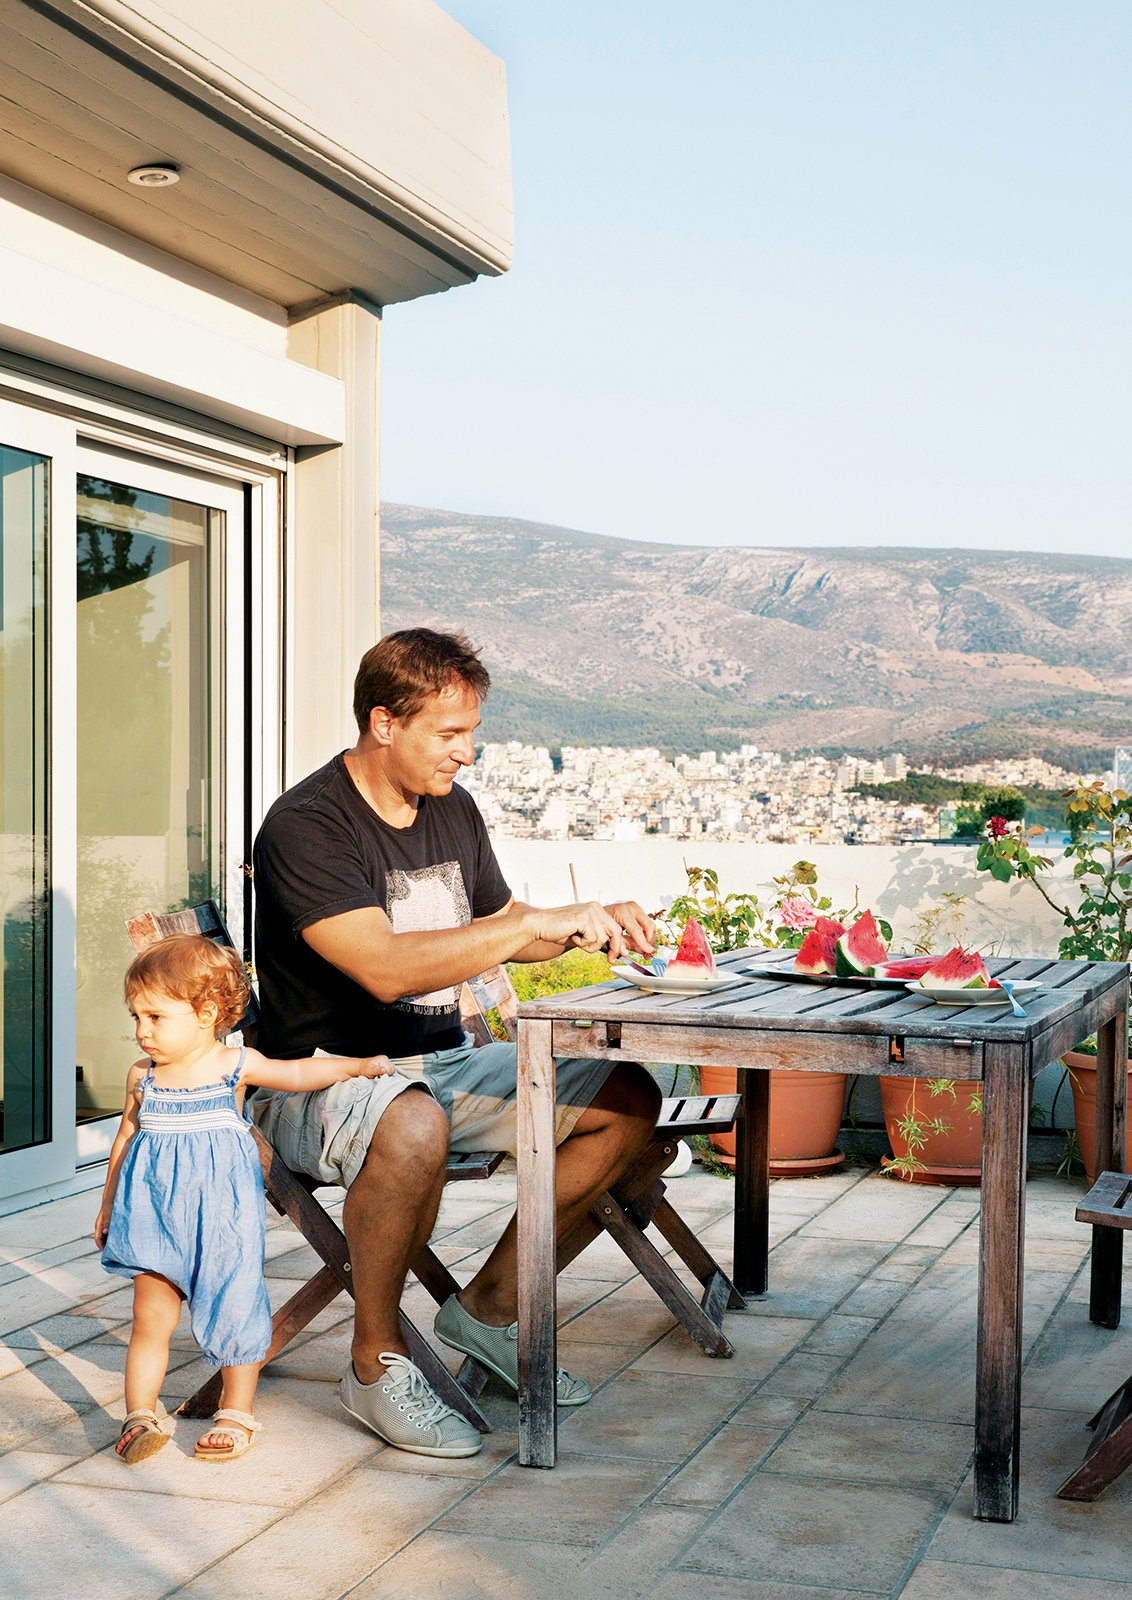 """Outdoor and Pavers Patio, Porch, Deck Vassiliou and Angeliki tuck into watermelon slices on a patio off the master bedroom. The terrace offers views of Mount Lycabettus, whose peak towers 745 feet above Athens, and the city itself, which splays out toward the mountains in the distance.  Search """"terrace"""" from Odd Angles Don't Stop This Apartment's Transformation"""